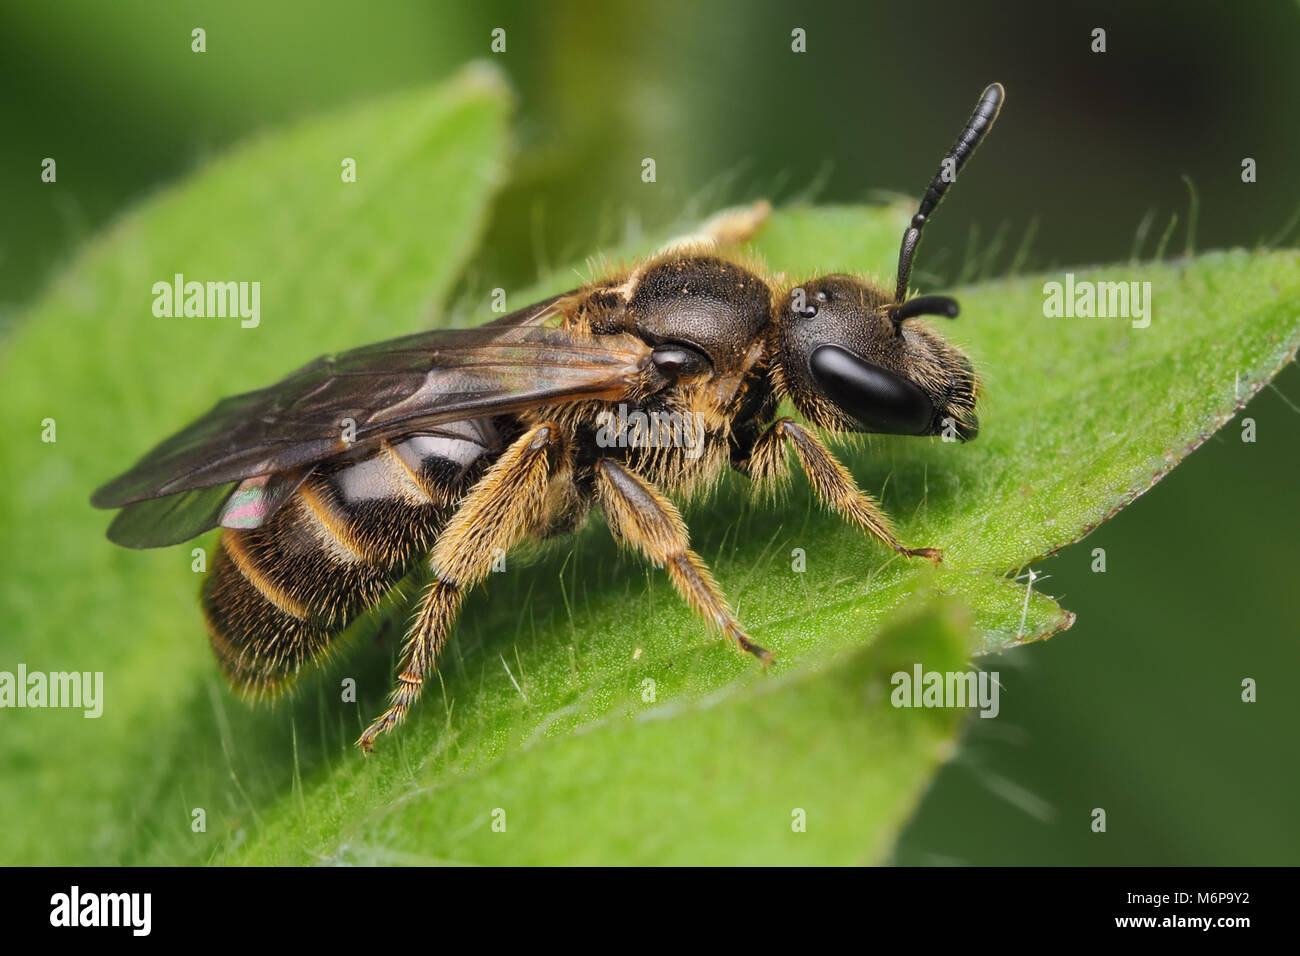 Sweat Bee or Furrow Bee (Halictus rubicundus) at rest on leaf. Tipperary, Ireland - Stock Image